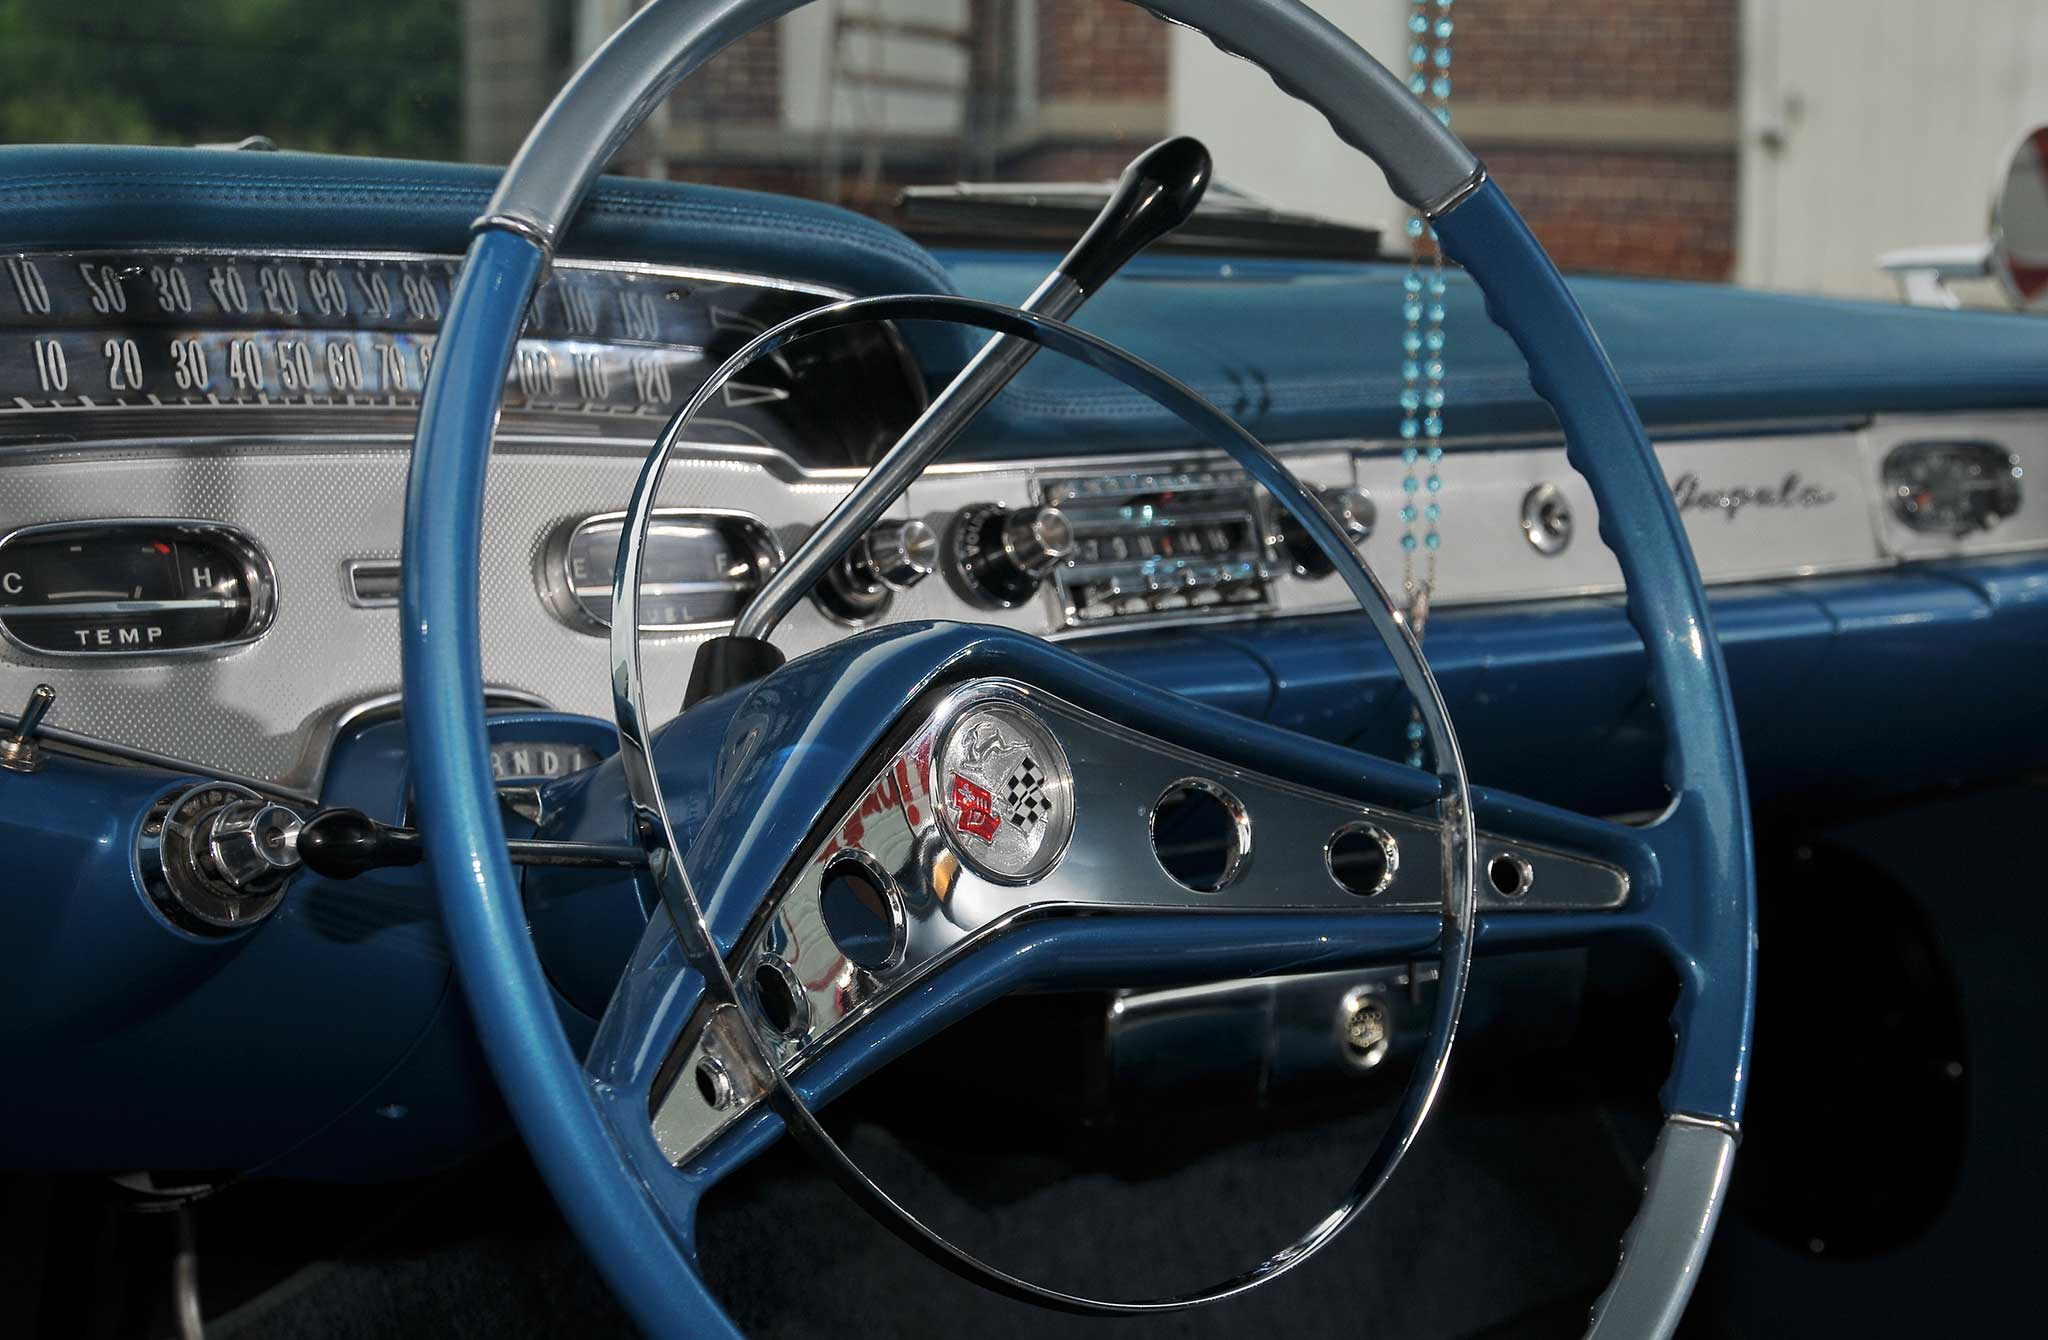 Chevrolet Impala Steering Wheel